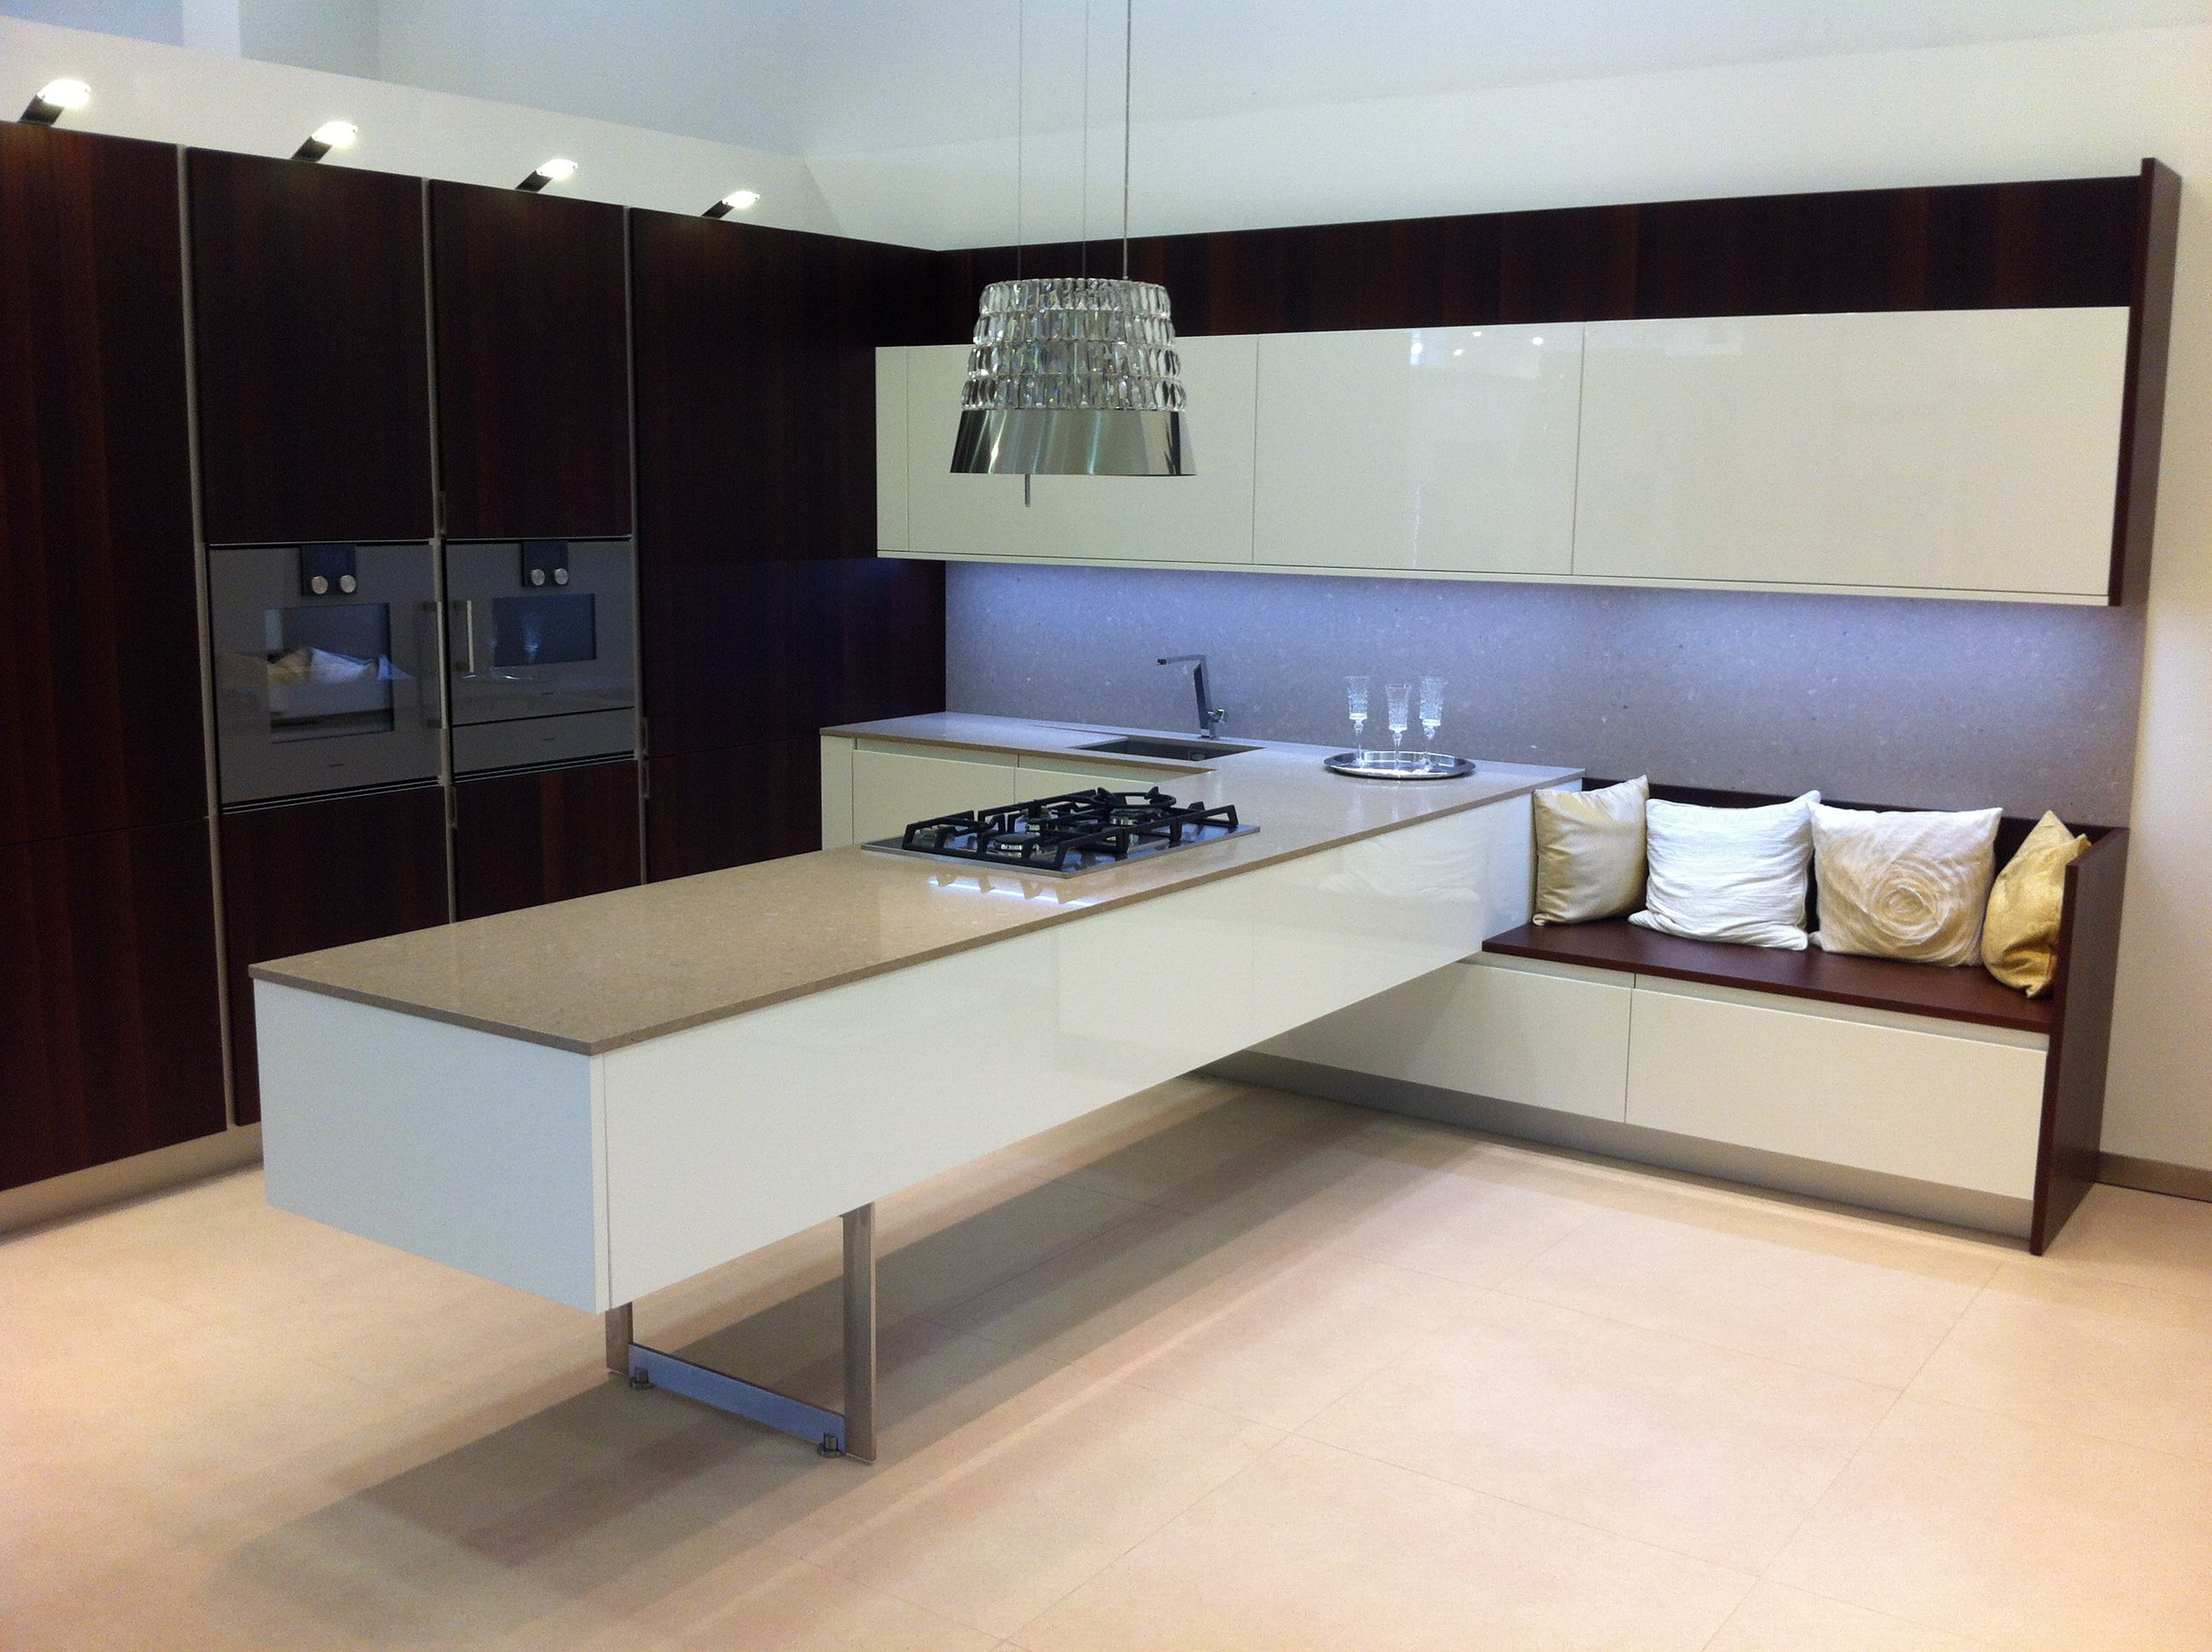 Floating Kitchen Island floating kitchen island with built-in sofa | house•* | pinterest